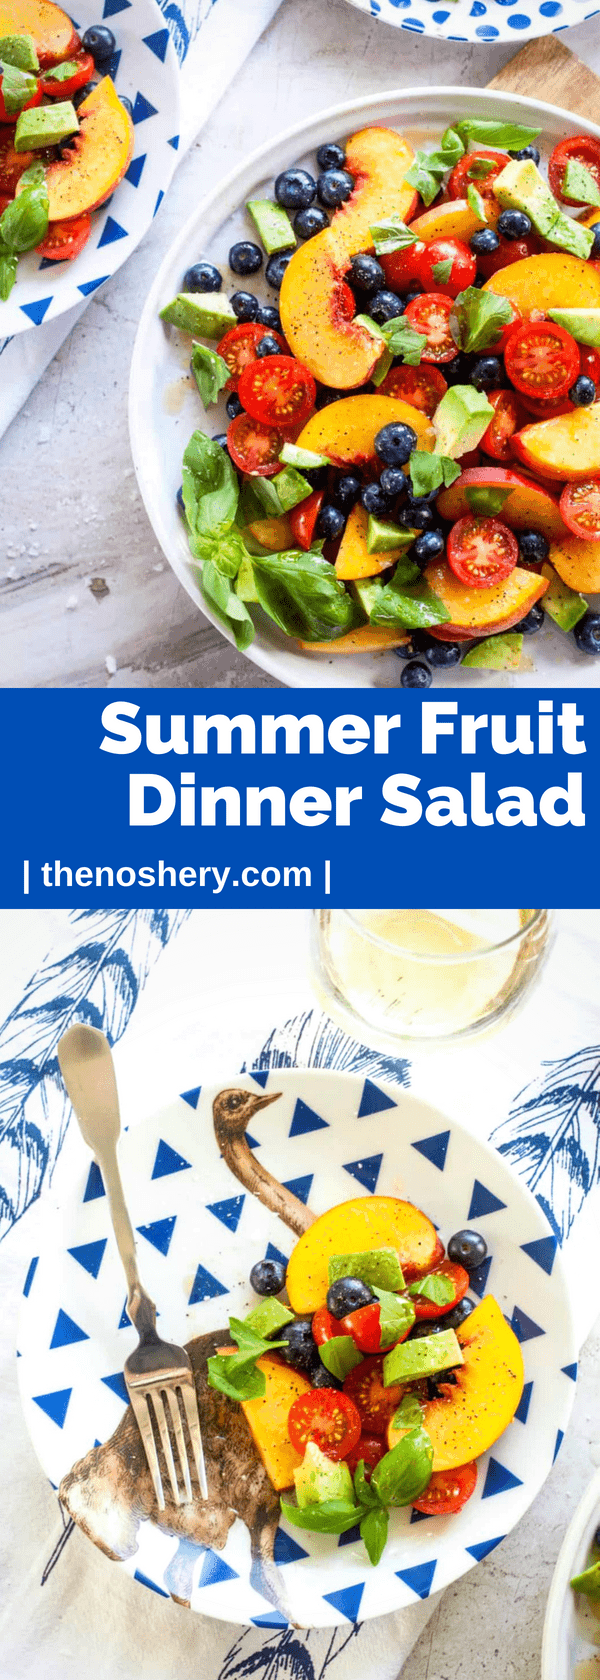 Summer Fruit Dinner Salad | Fruit salad isn't just for dessert or an afternoon snack. This fruit salad is savory and sweet perfect for summer dinners on the patio. | The Noshery